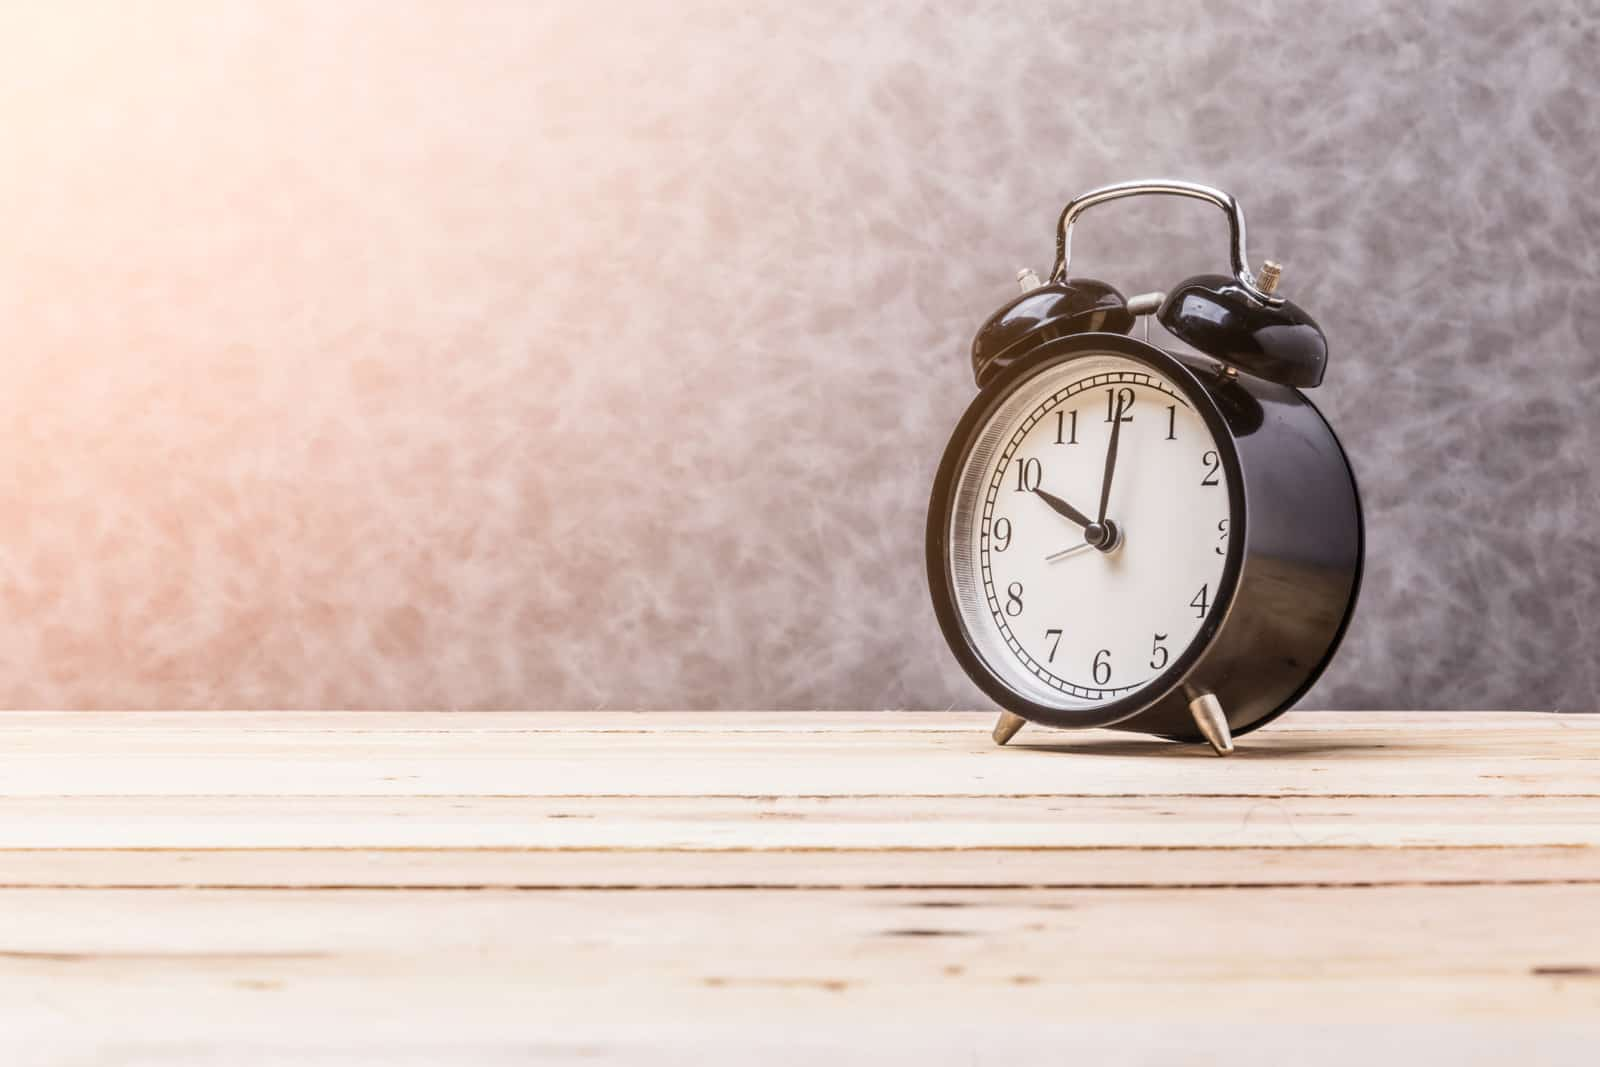 CBT Time-Keeping